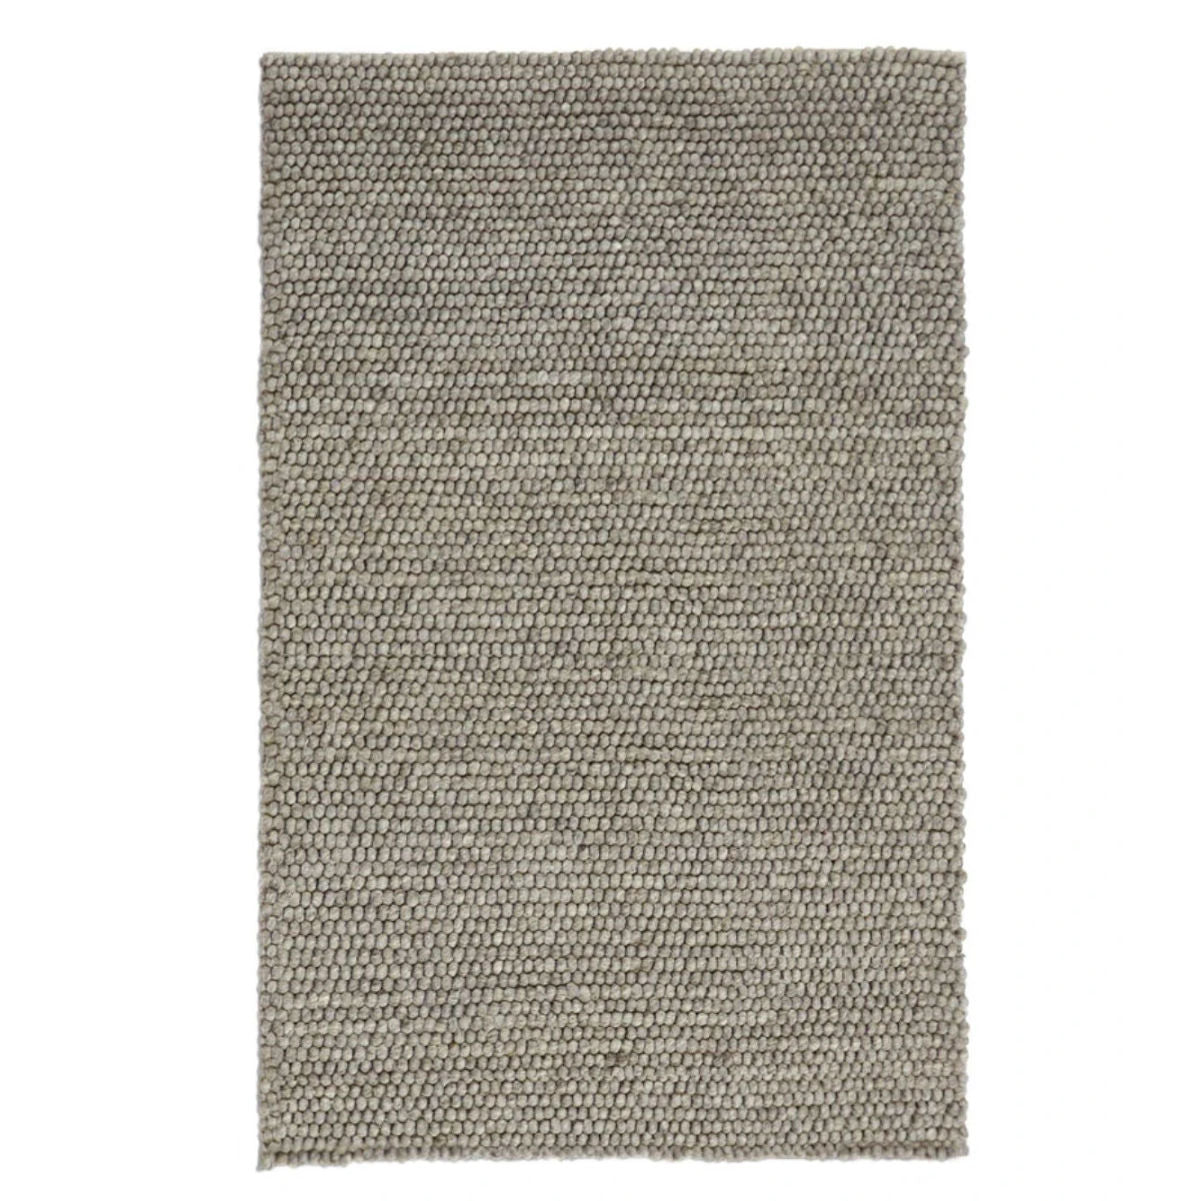 Hay Peas rug 80 * 140cm, medium grey